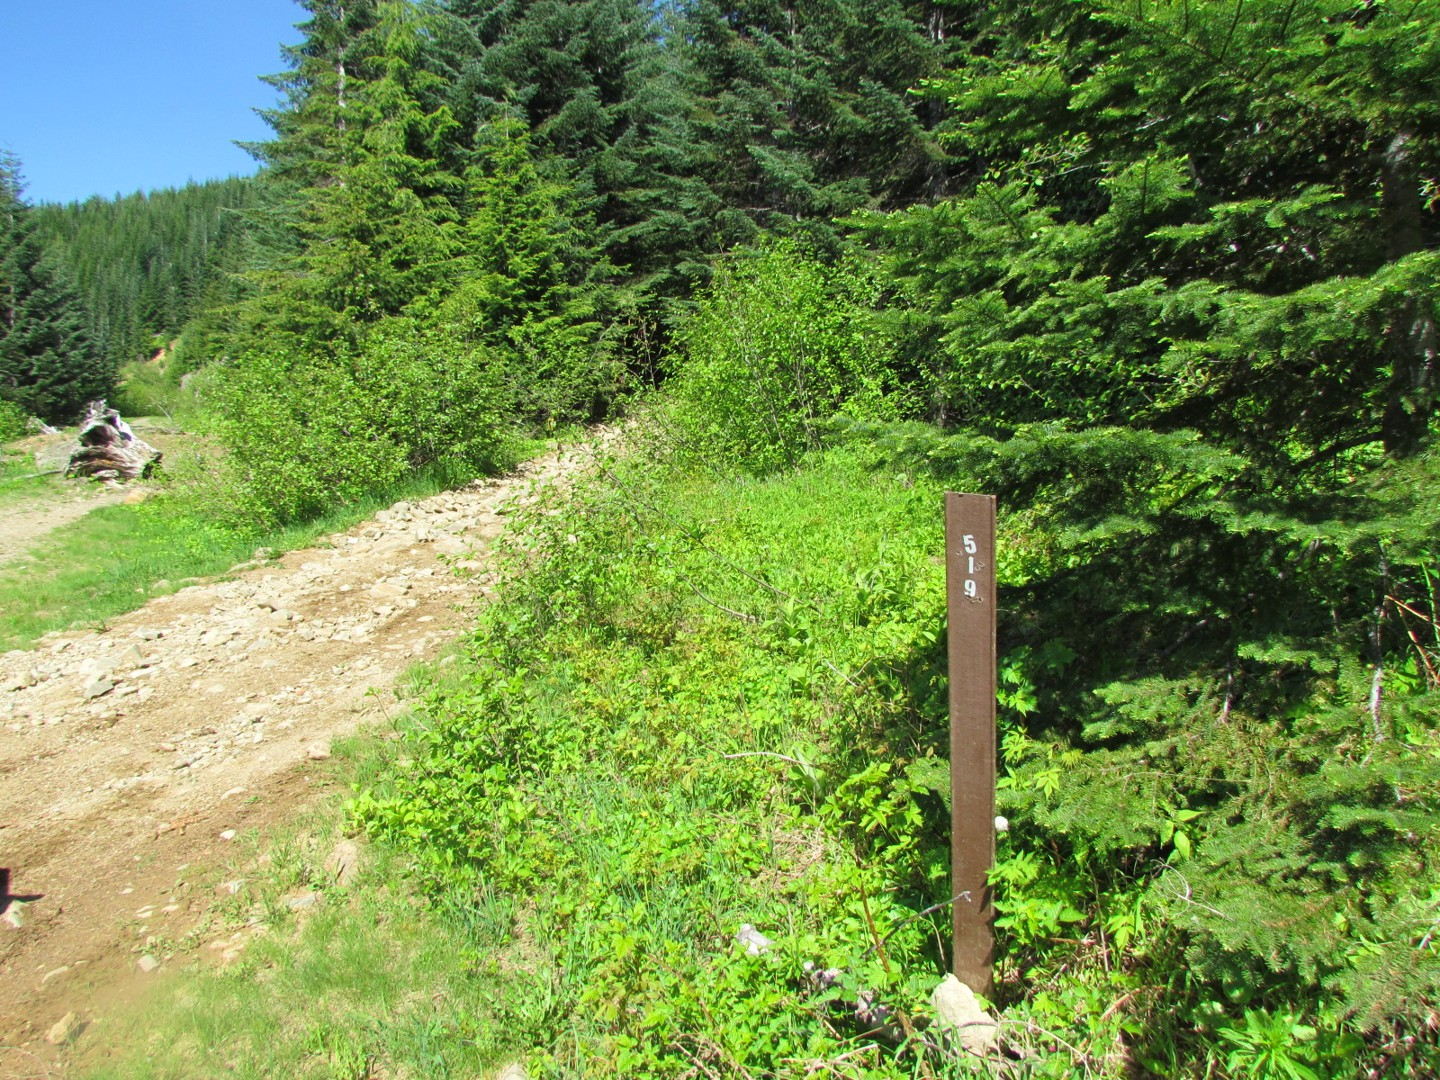 Evans Creek / Trail #519 - Waypoint 1: Trailhead / Start